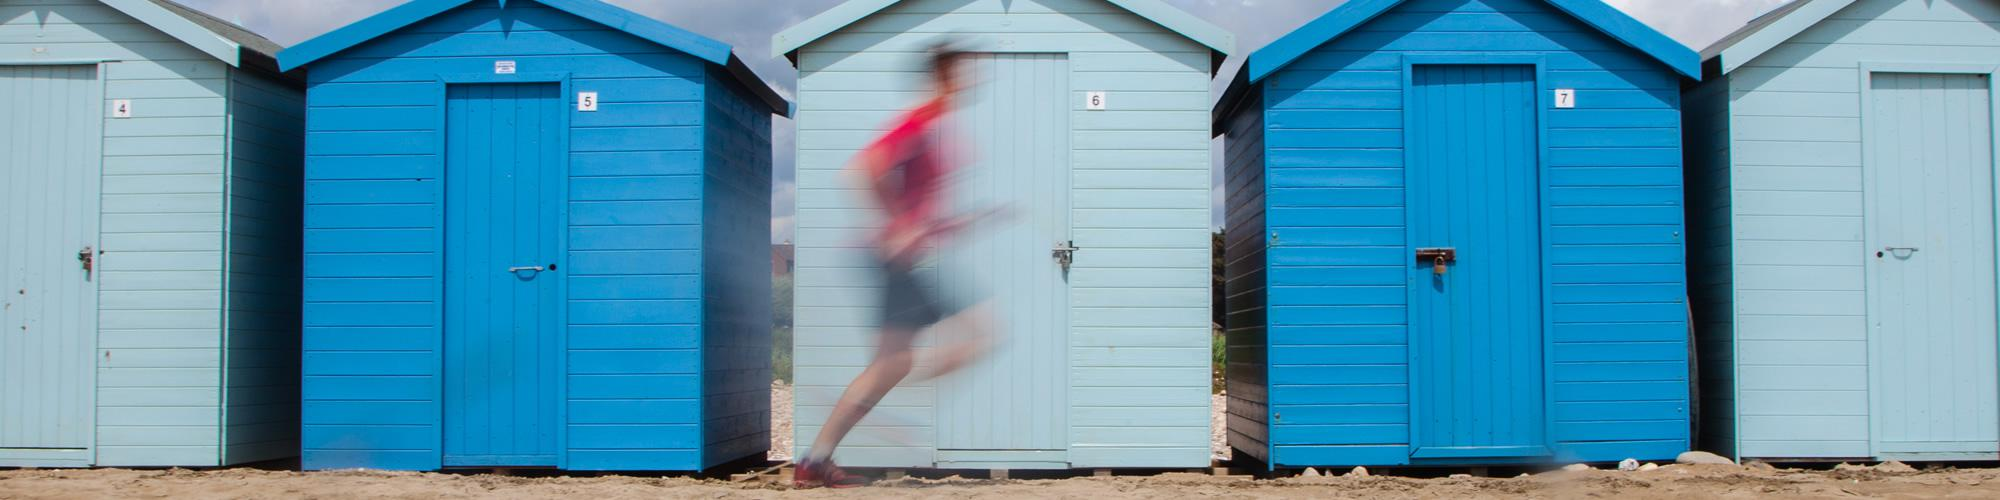 Running at the Beach, Fitness and Technique Training - Elevate Physiotherapy in Yeovil, Somerset